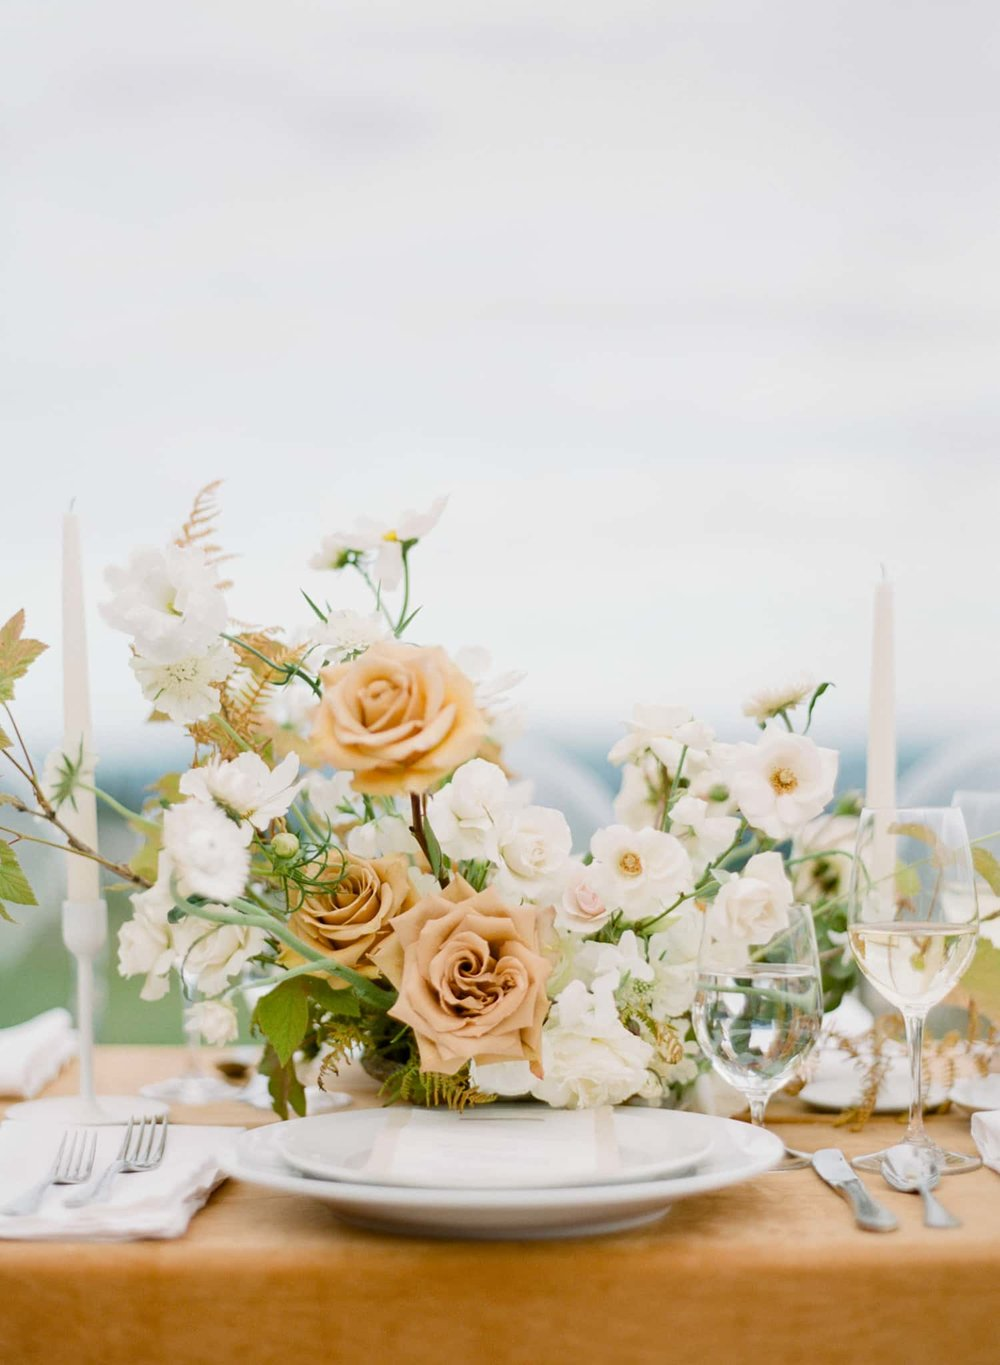 Detailed Photograph of Wedding Table